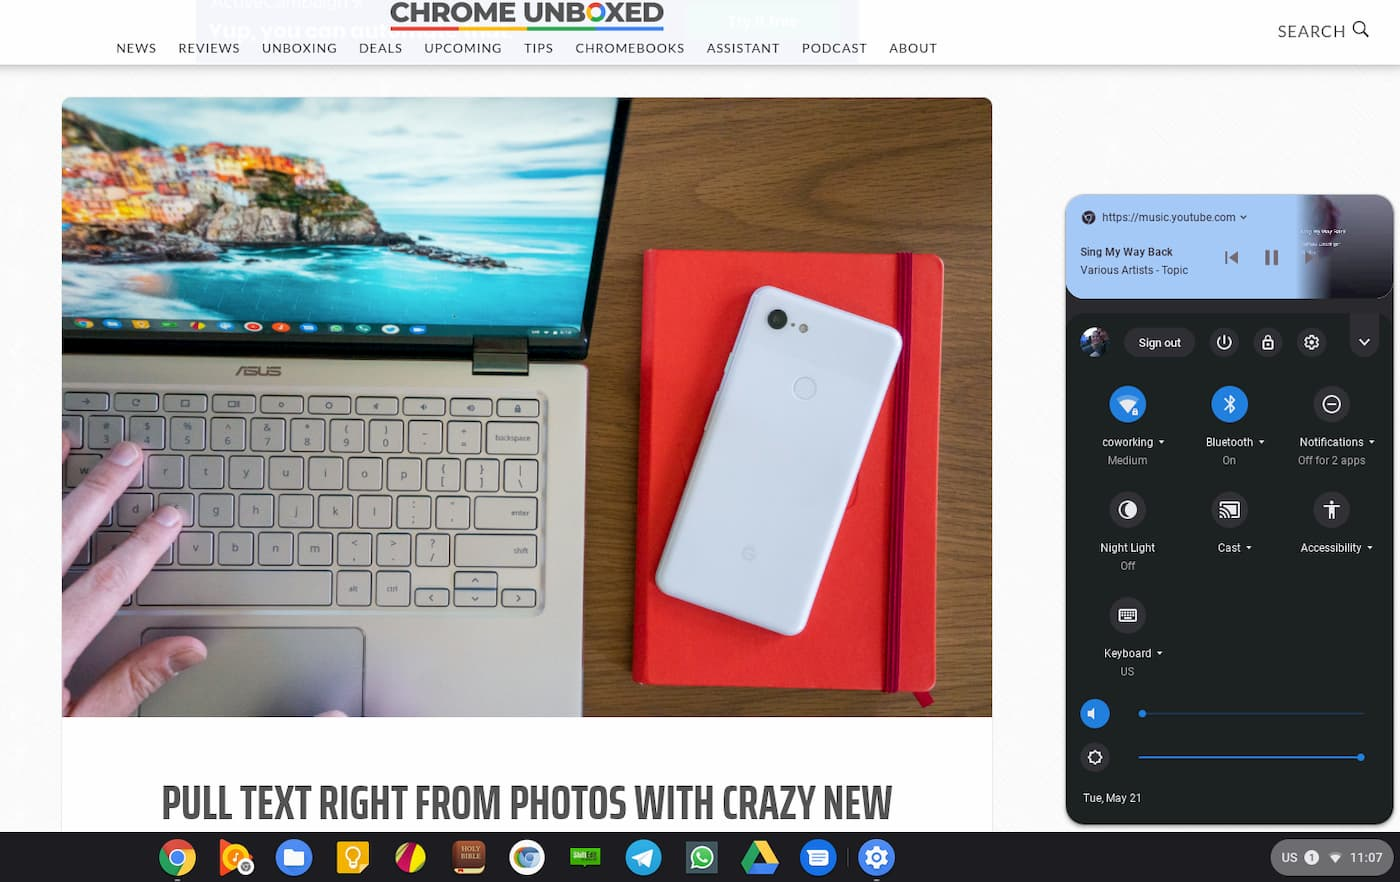 Chrome OS Brings Android's Rich Media Notifications To Chromebooks